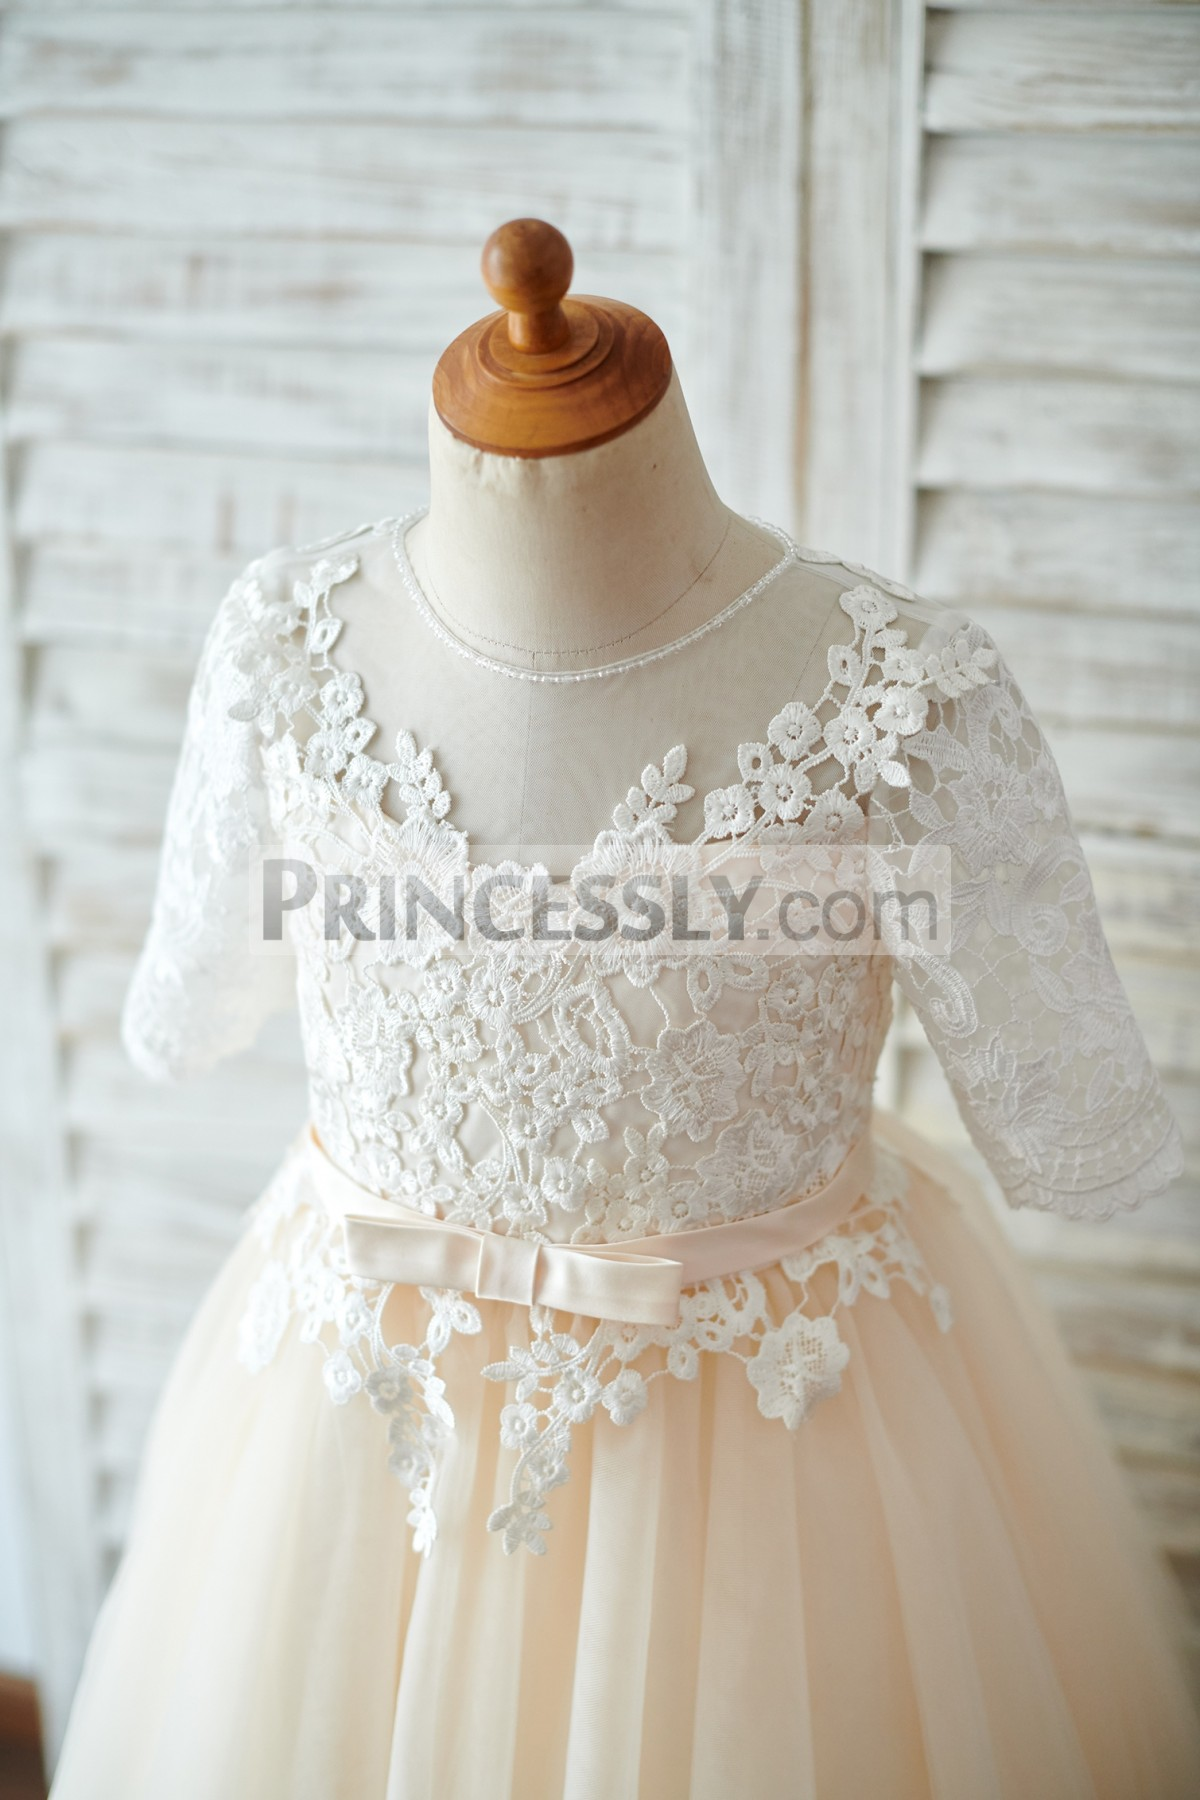 Beaded Jewel Neck Sheer Bodice with Belt in Half Sleeves